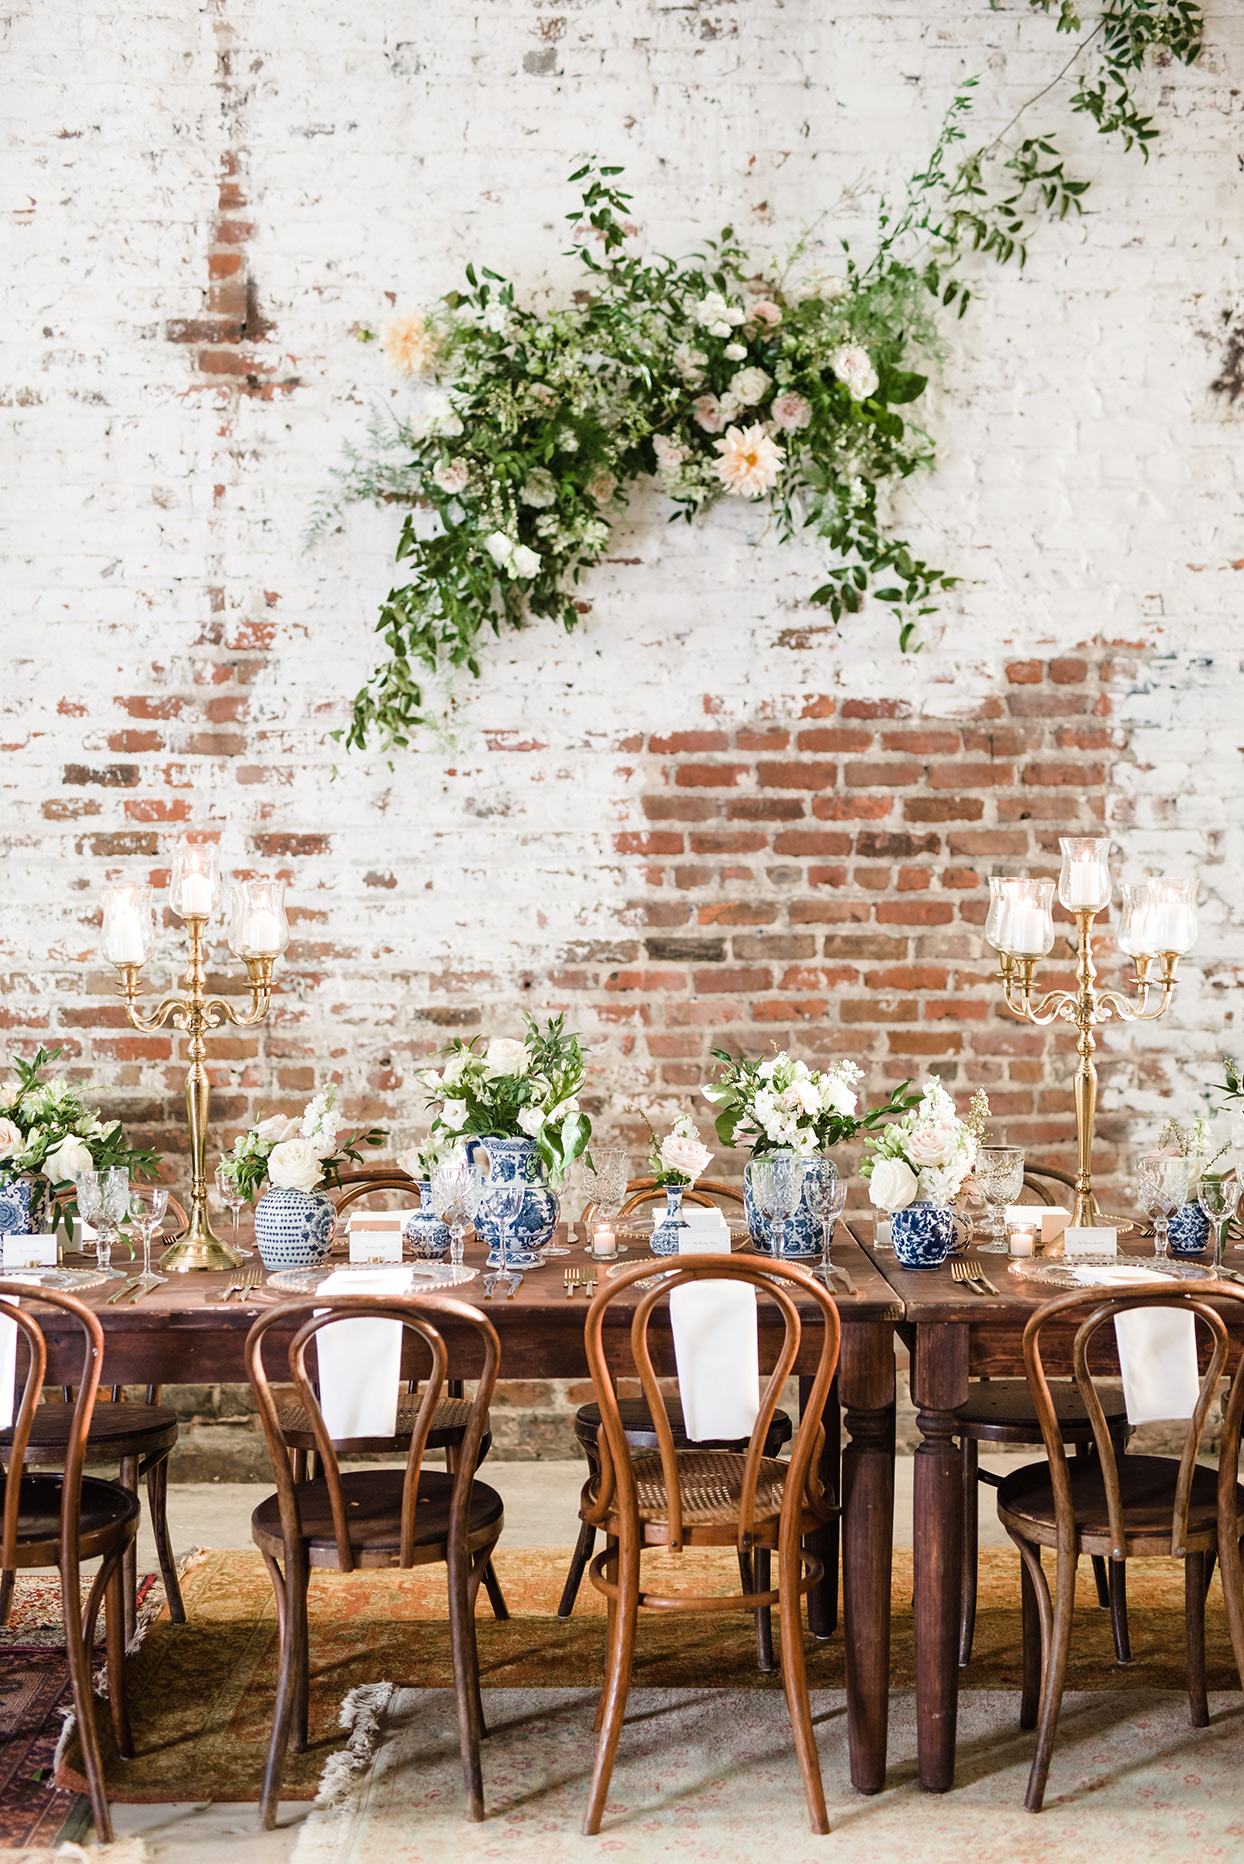 single long wooden table, brass candelabras and low bunches of flowers and foliage